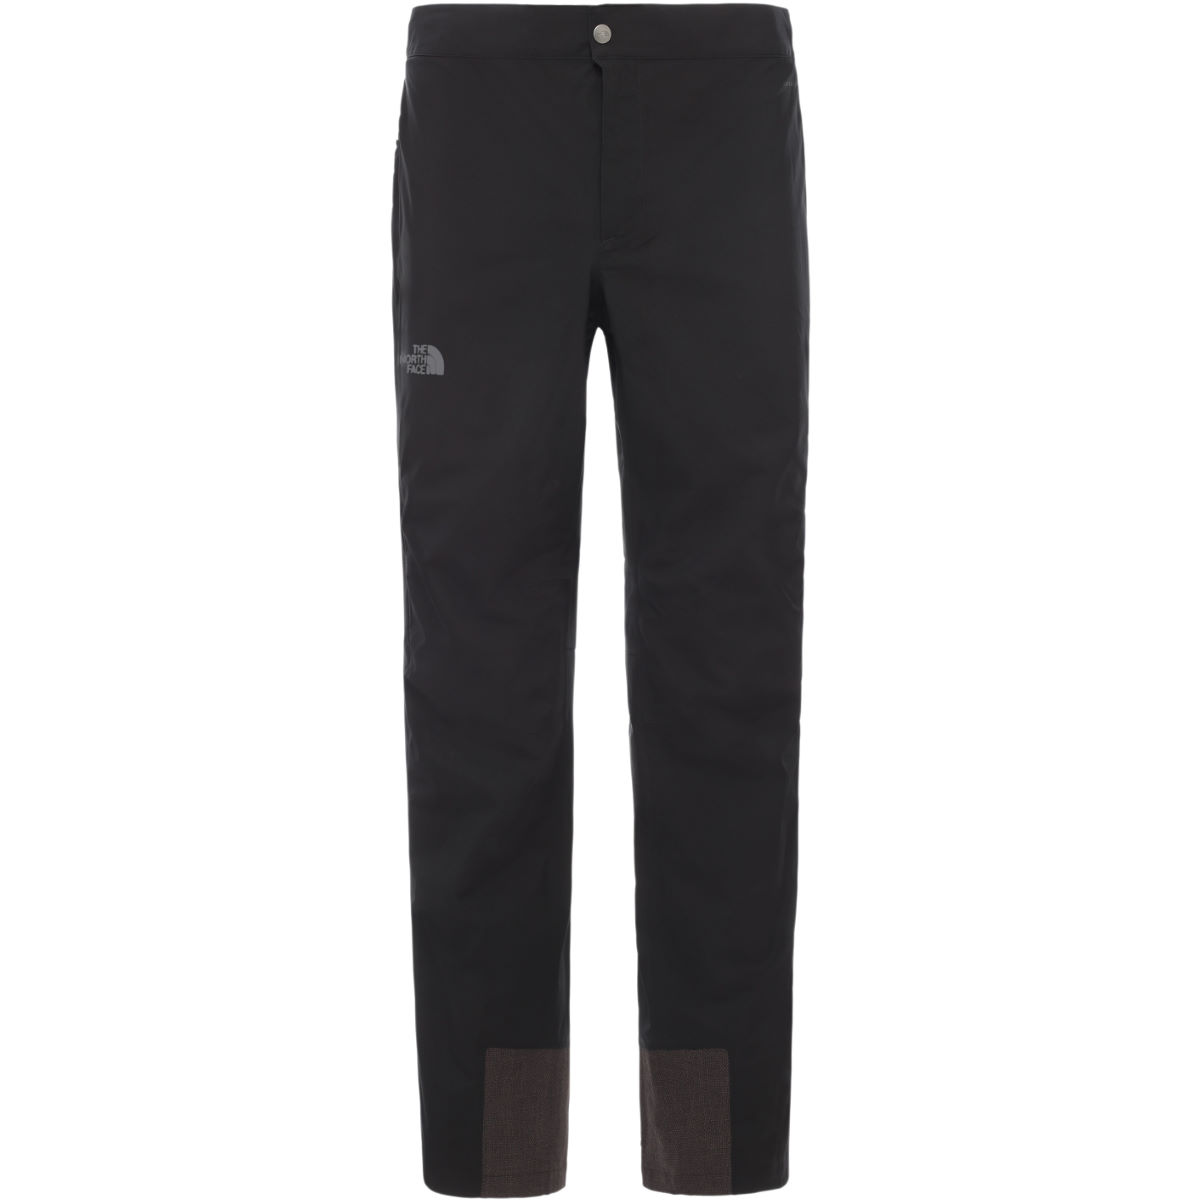 The North Face The North Face Dryzzle FutureLight™ Full Zip Pant   Trousers